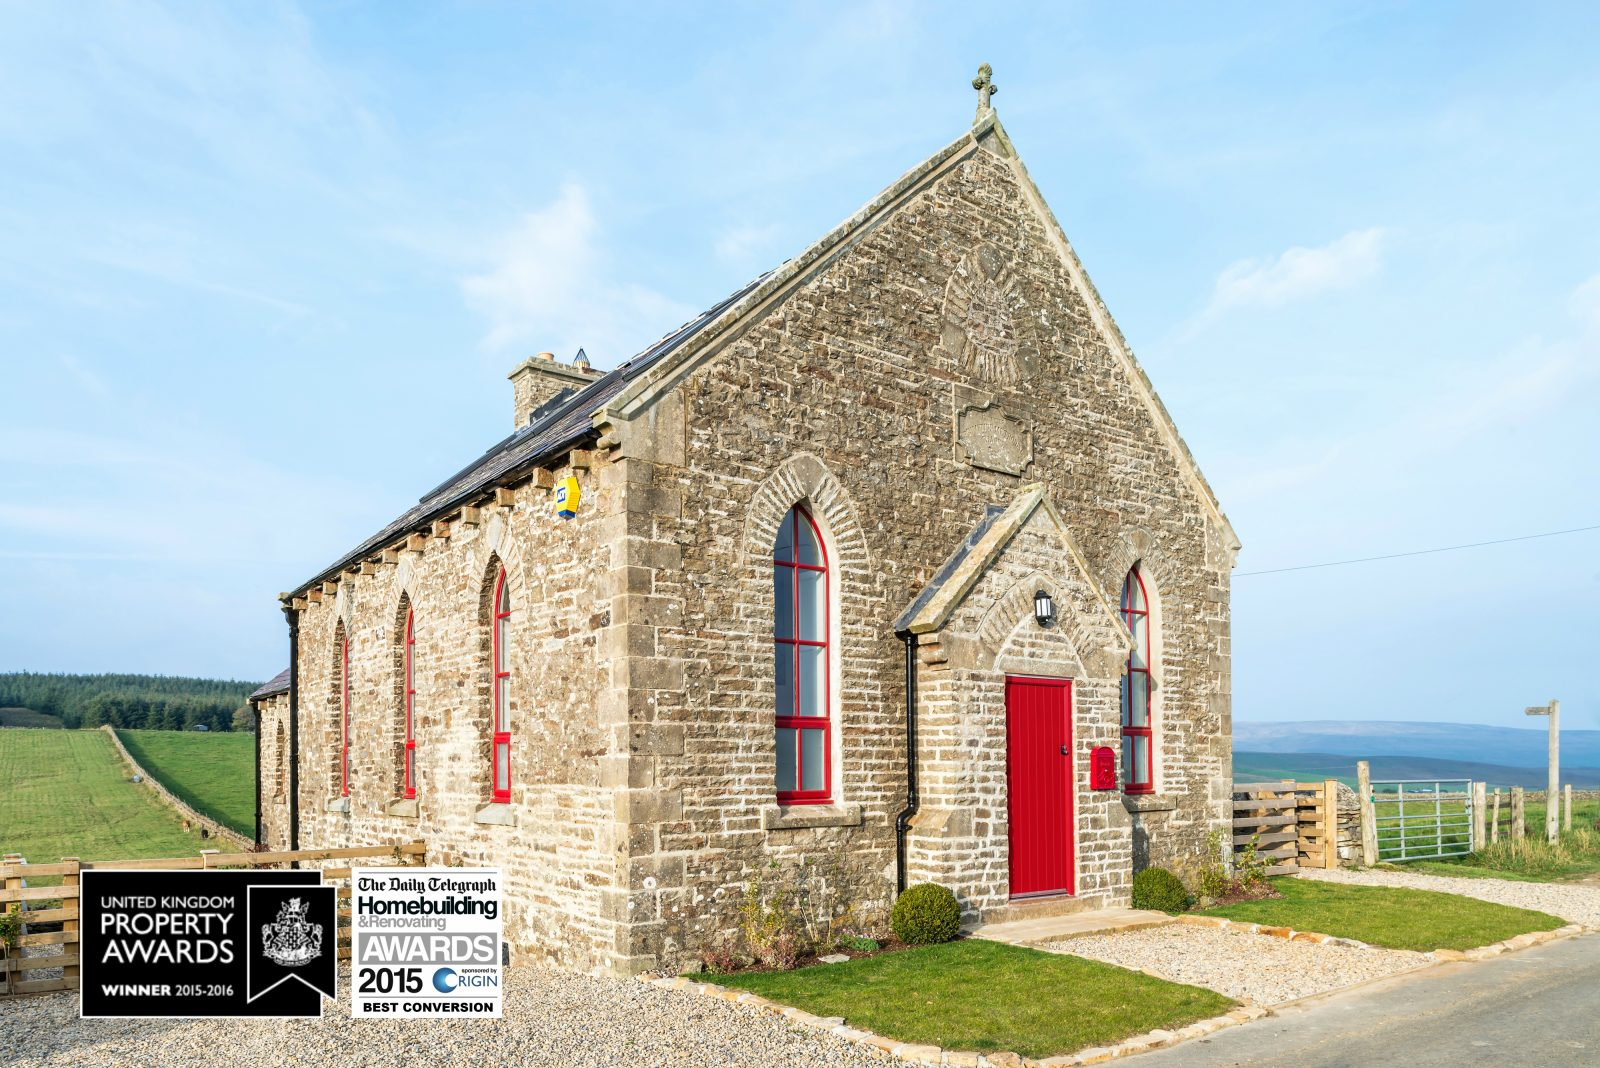 Award winning PVCu fabricator, Vista Panels were proud to add the XtremeDoor composite door to a derelict Victorian chapel, as part of a renovation project.